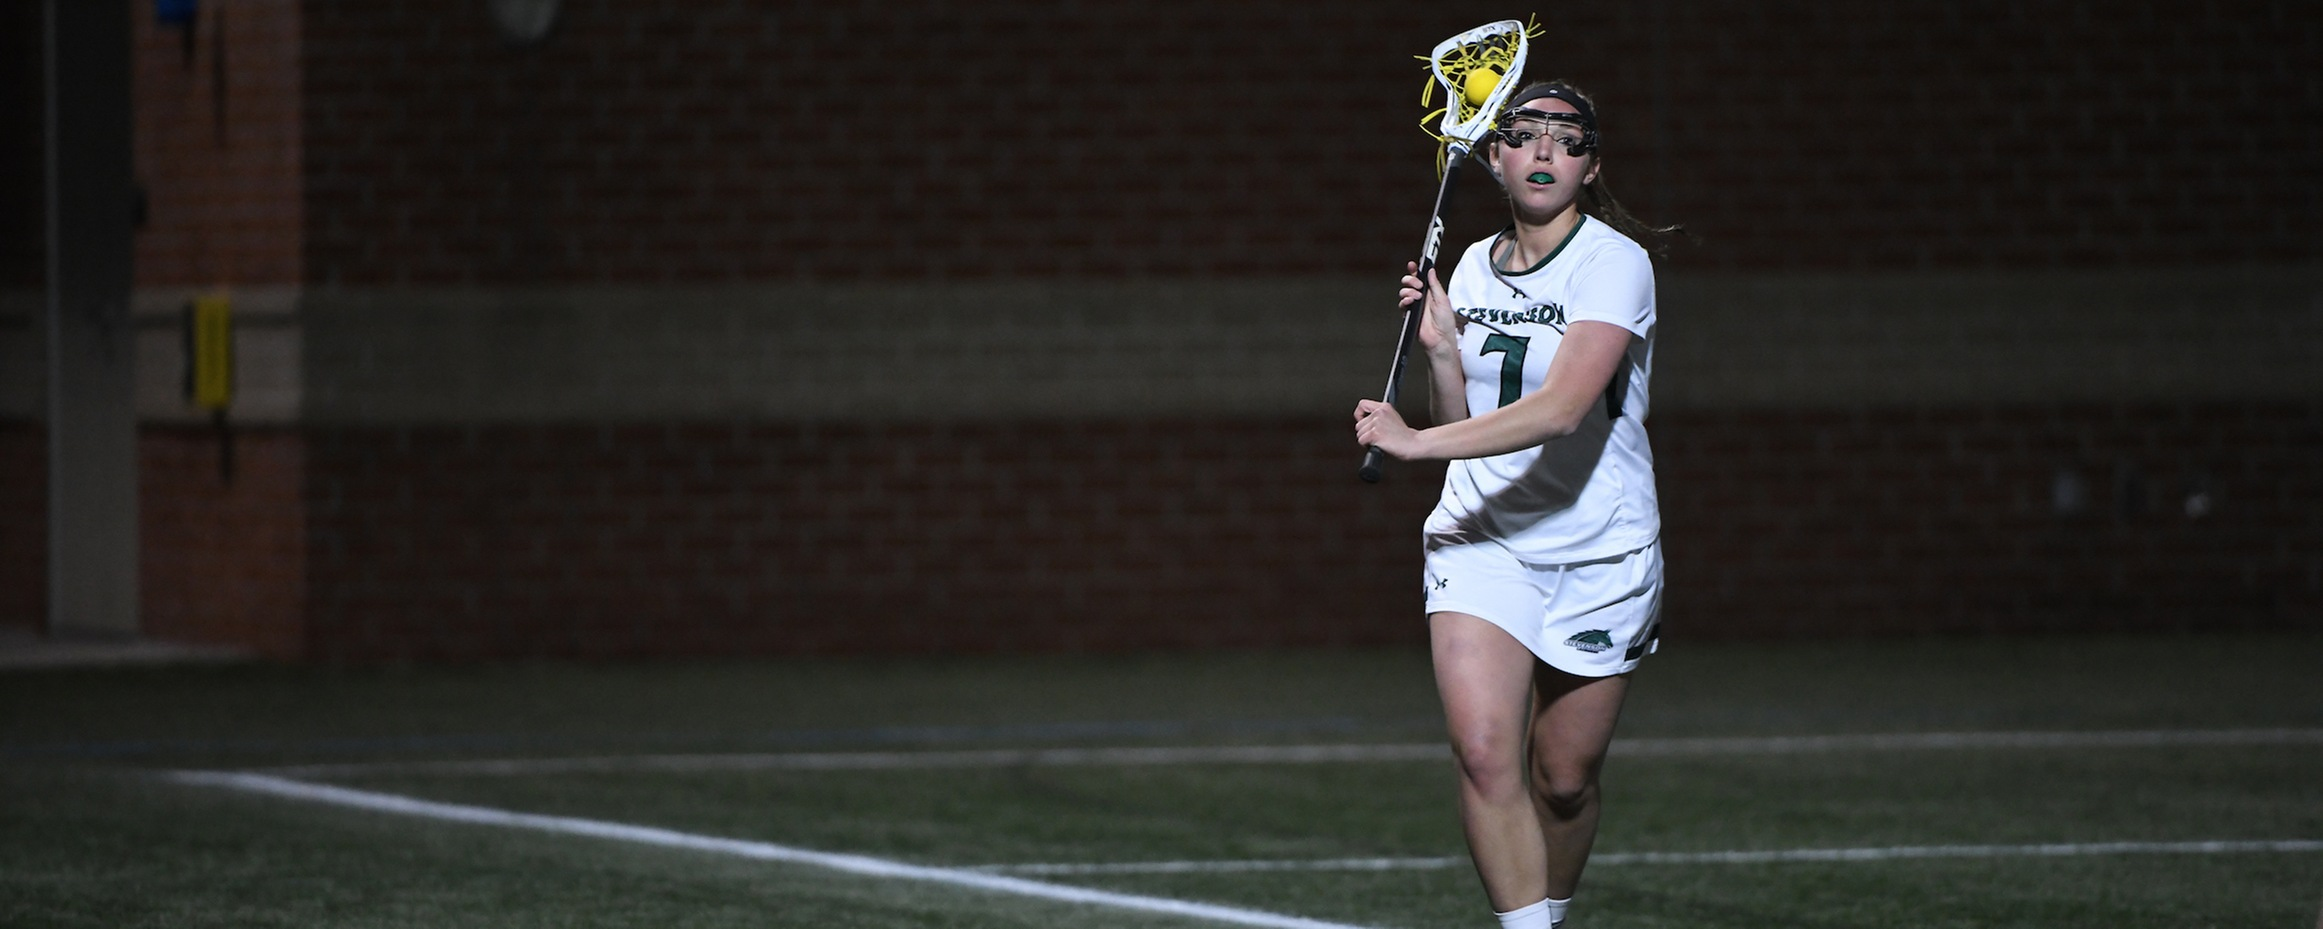 Seipp Totals Three Points in 11-10 Loss at Arcadia